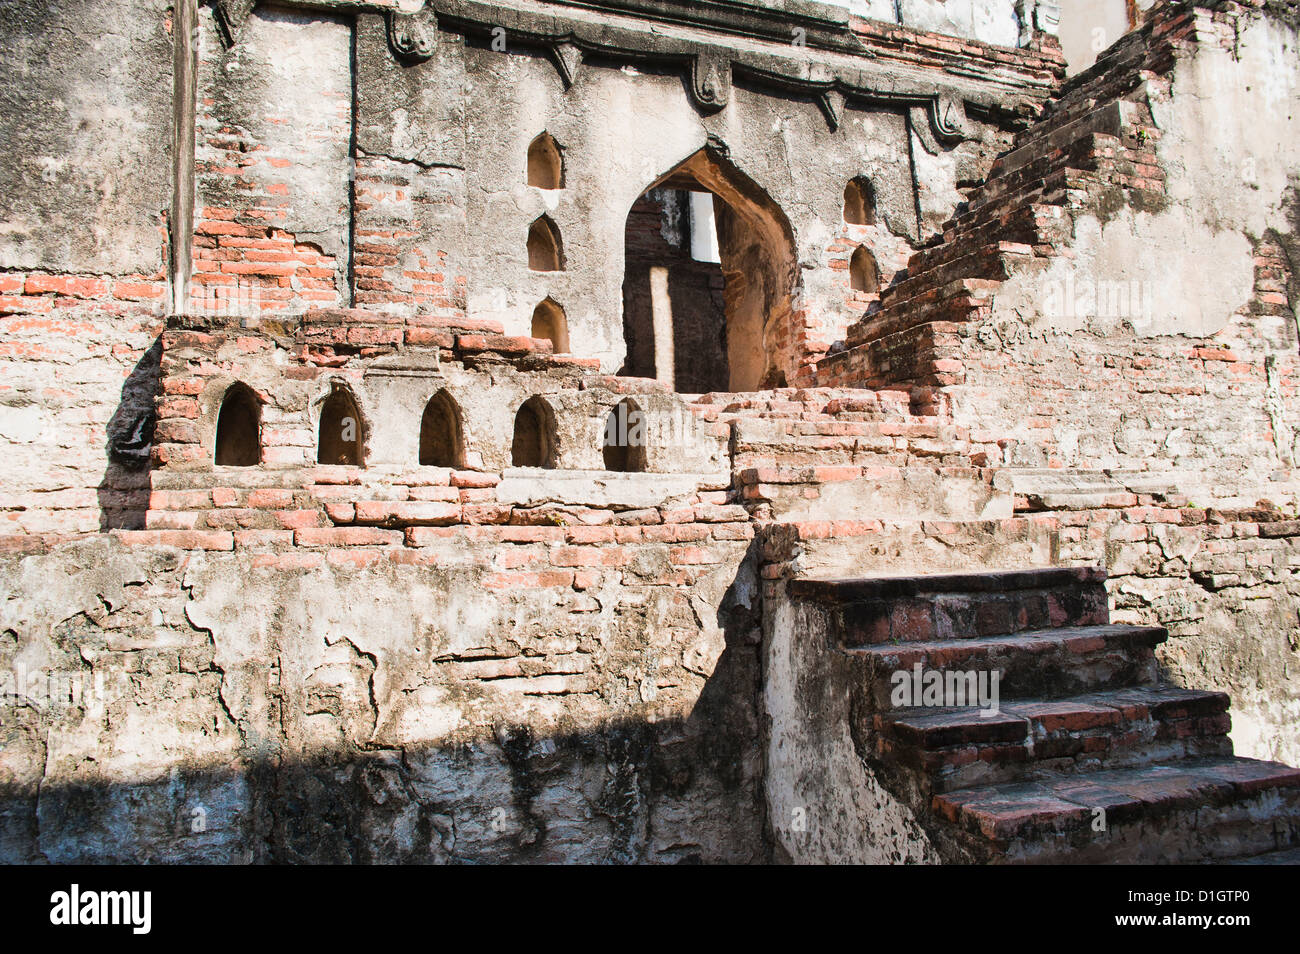 Ruins of old steps at King Narai's Palace, Lopburi, Thailand, Southeast Asia, Asia - Stock Image